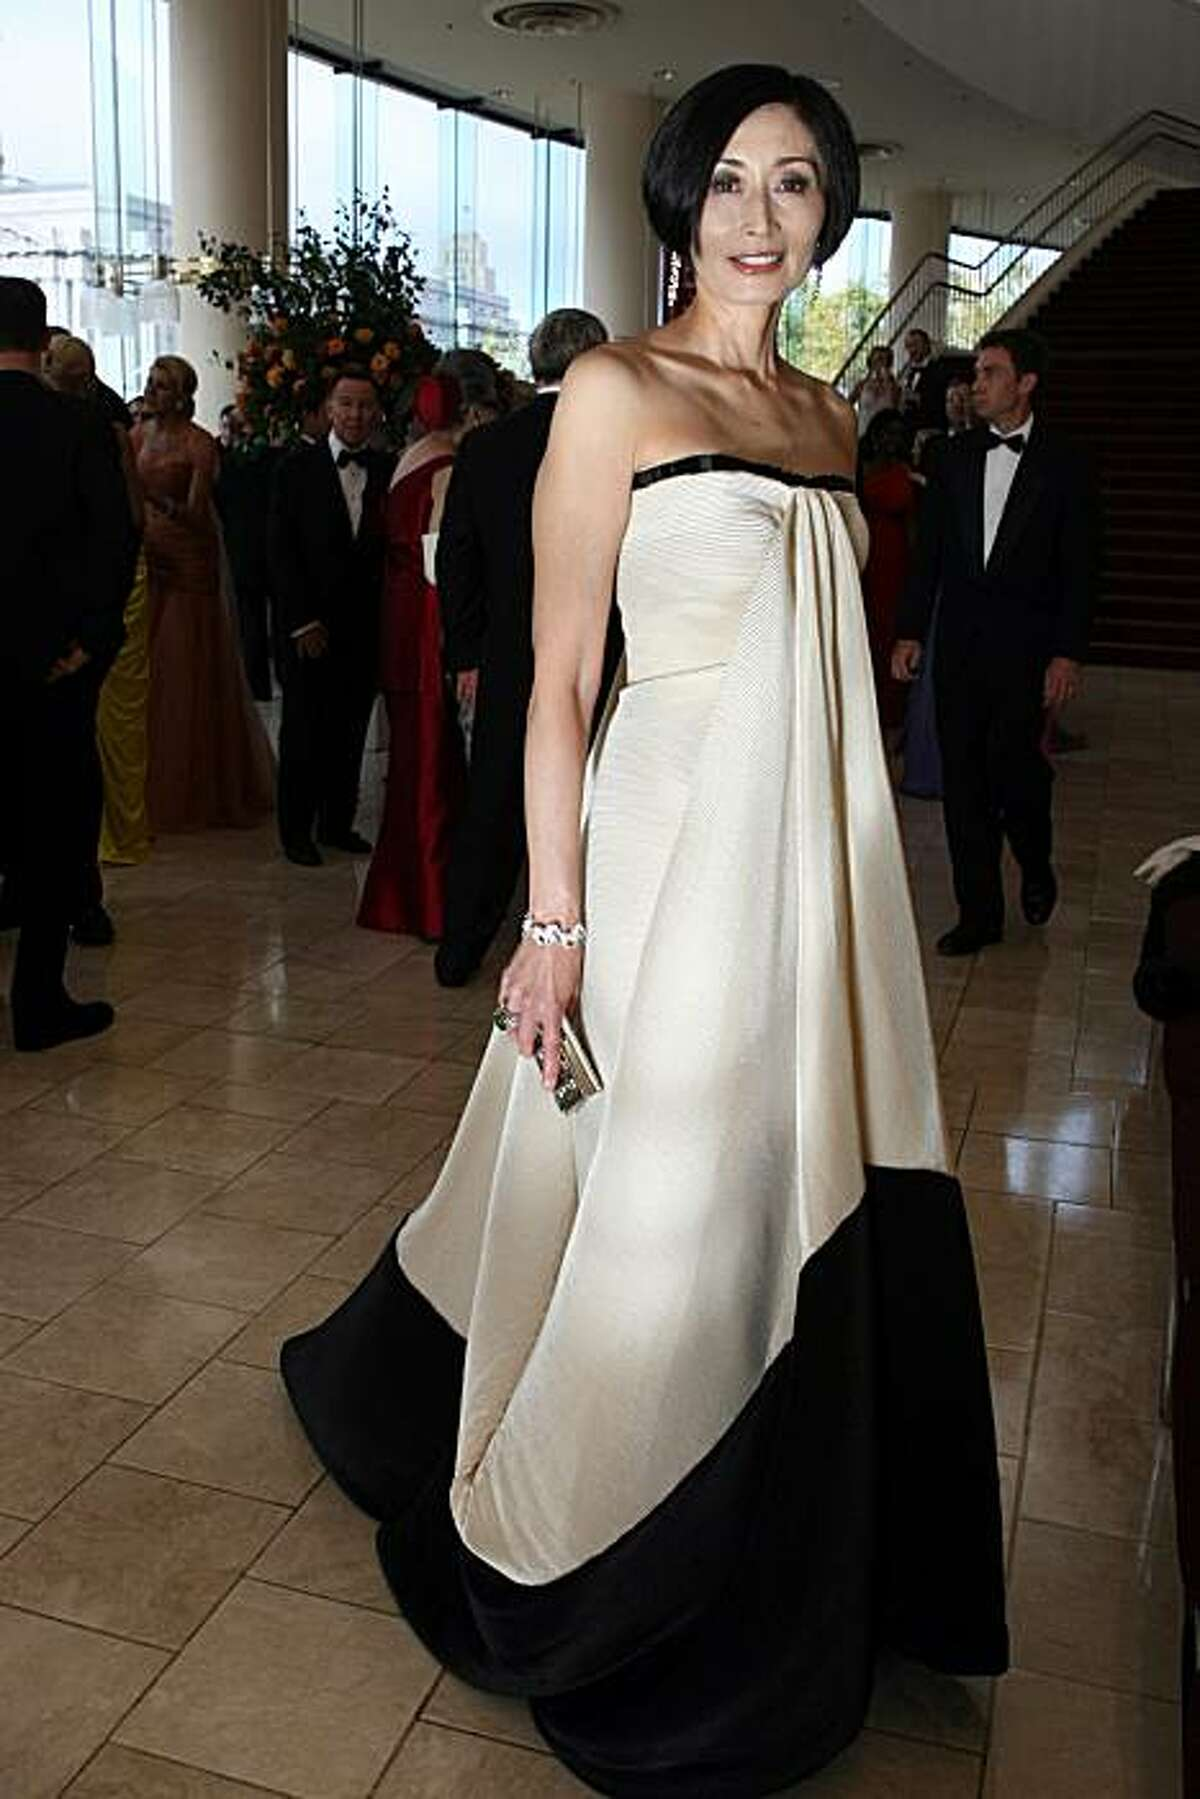 Yurie Pascarella, wears a dress by Gianfranco Ferre to the Symphony Gala Tuesday evening, September 7, 2010.